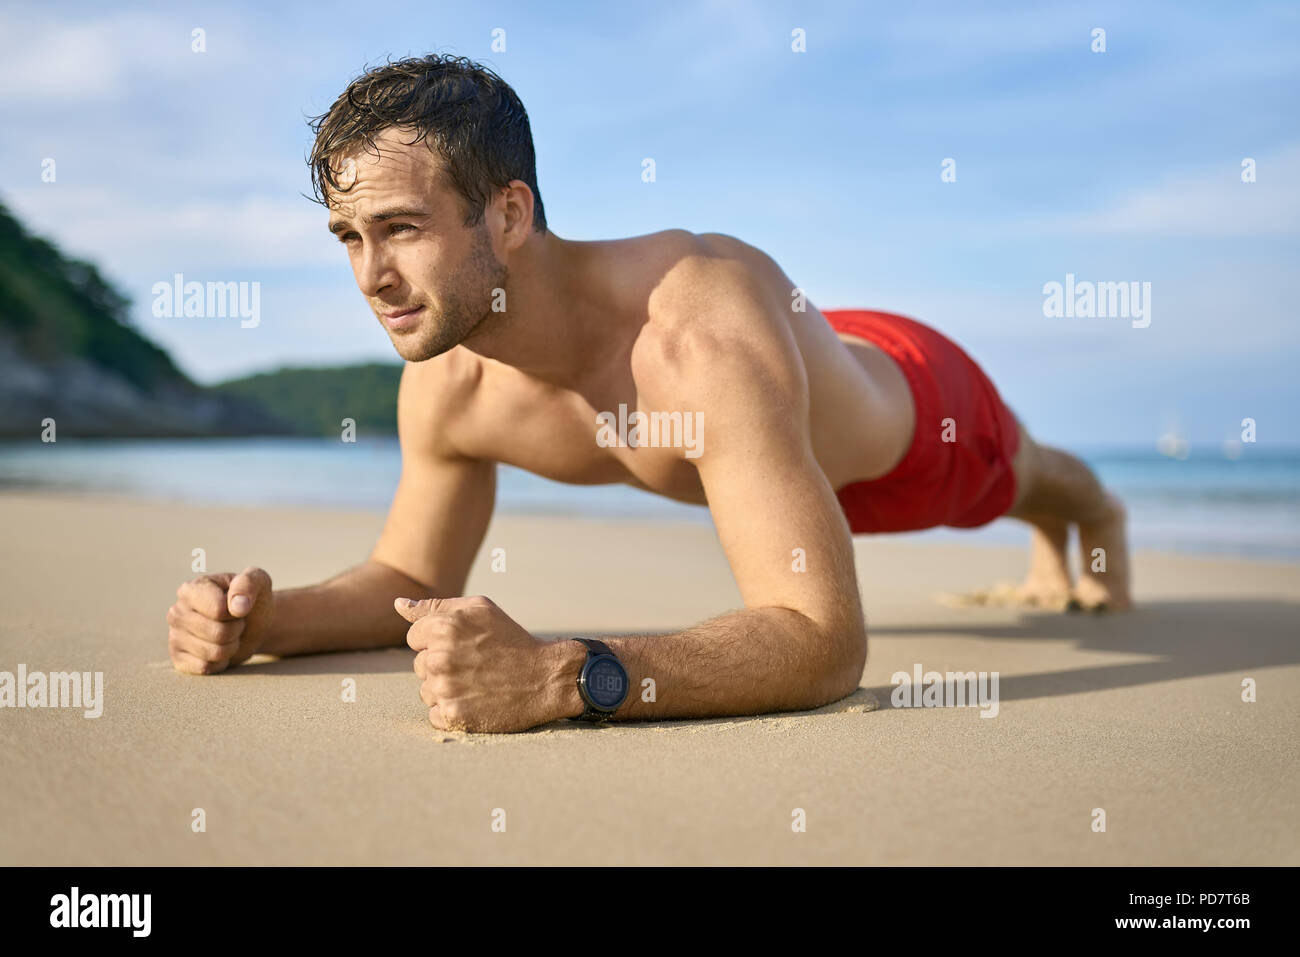 Strong tanned man does a plank on the sand beach on the sunny background of the sea with white boats and the blue sky. He wears a red swim trunks and  - Stock Image